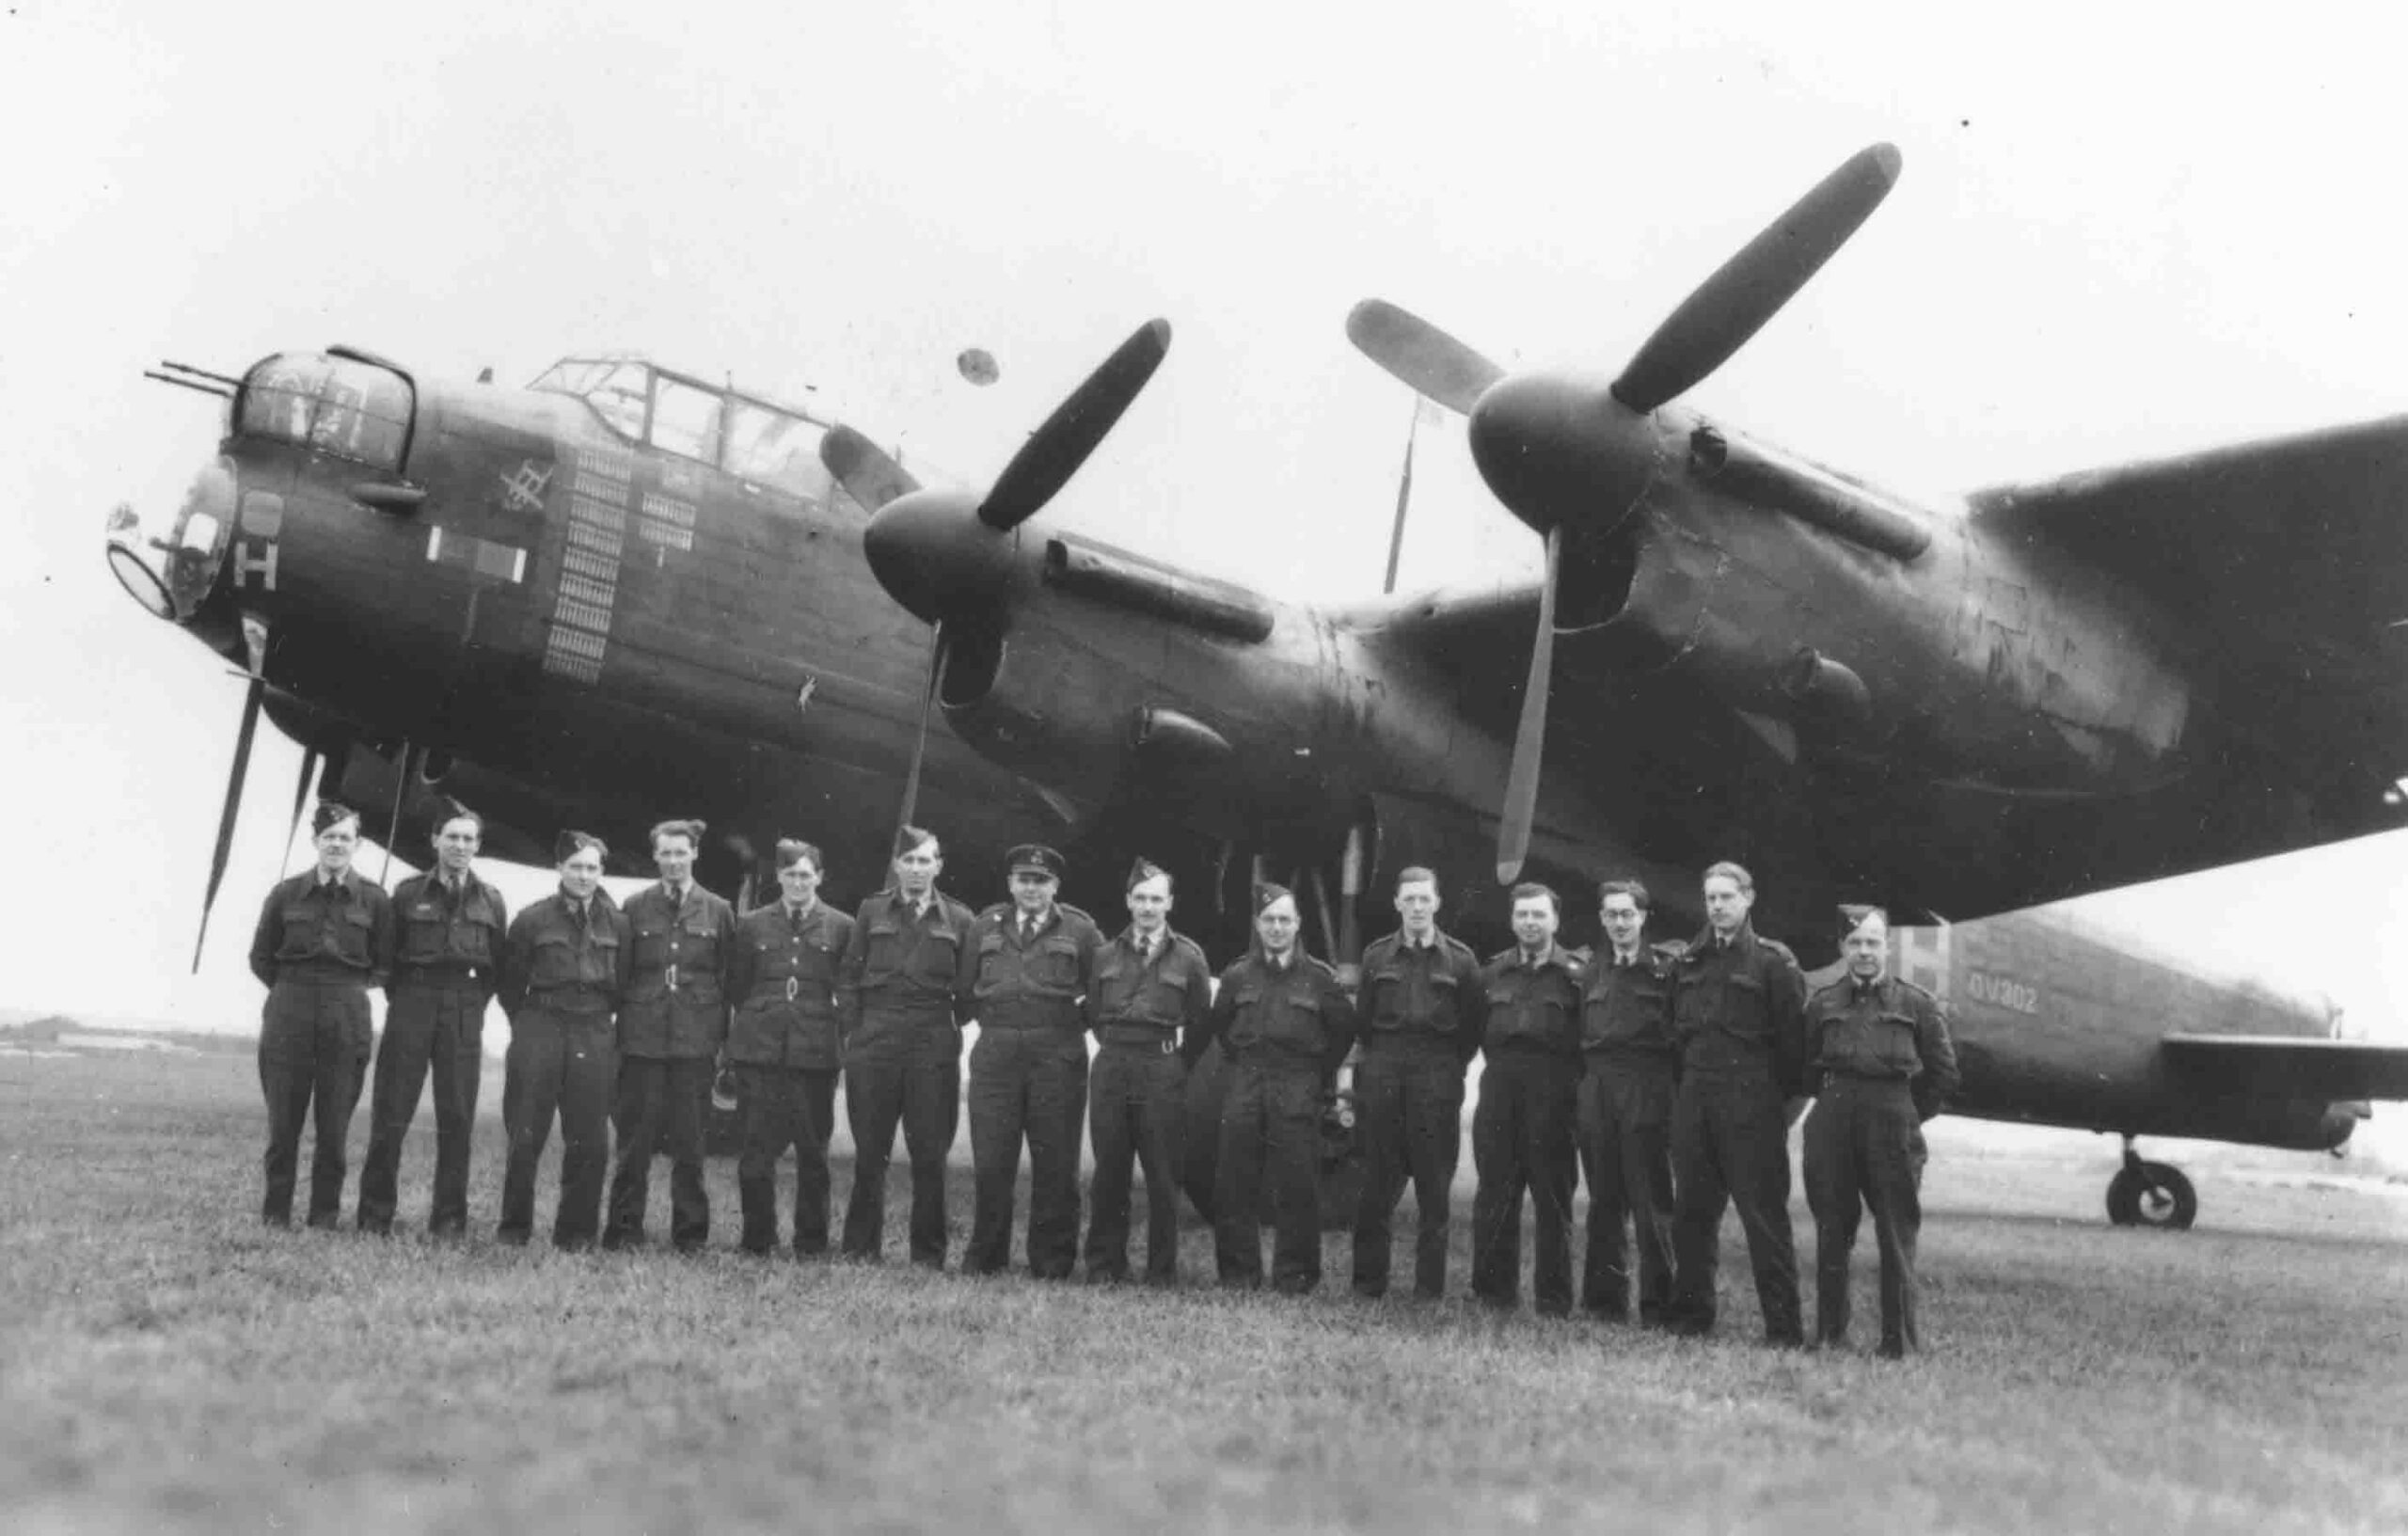 Lancasters were not only used for bombing, but also for electronic deception.